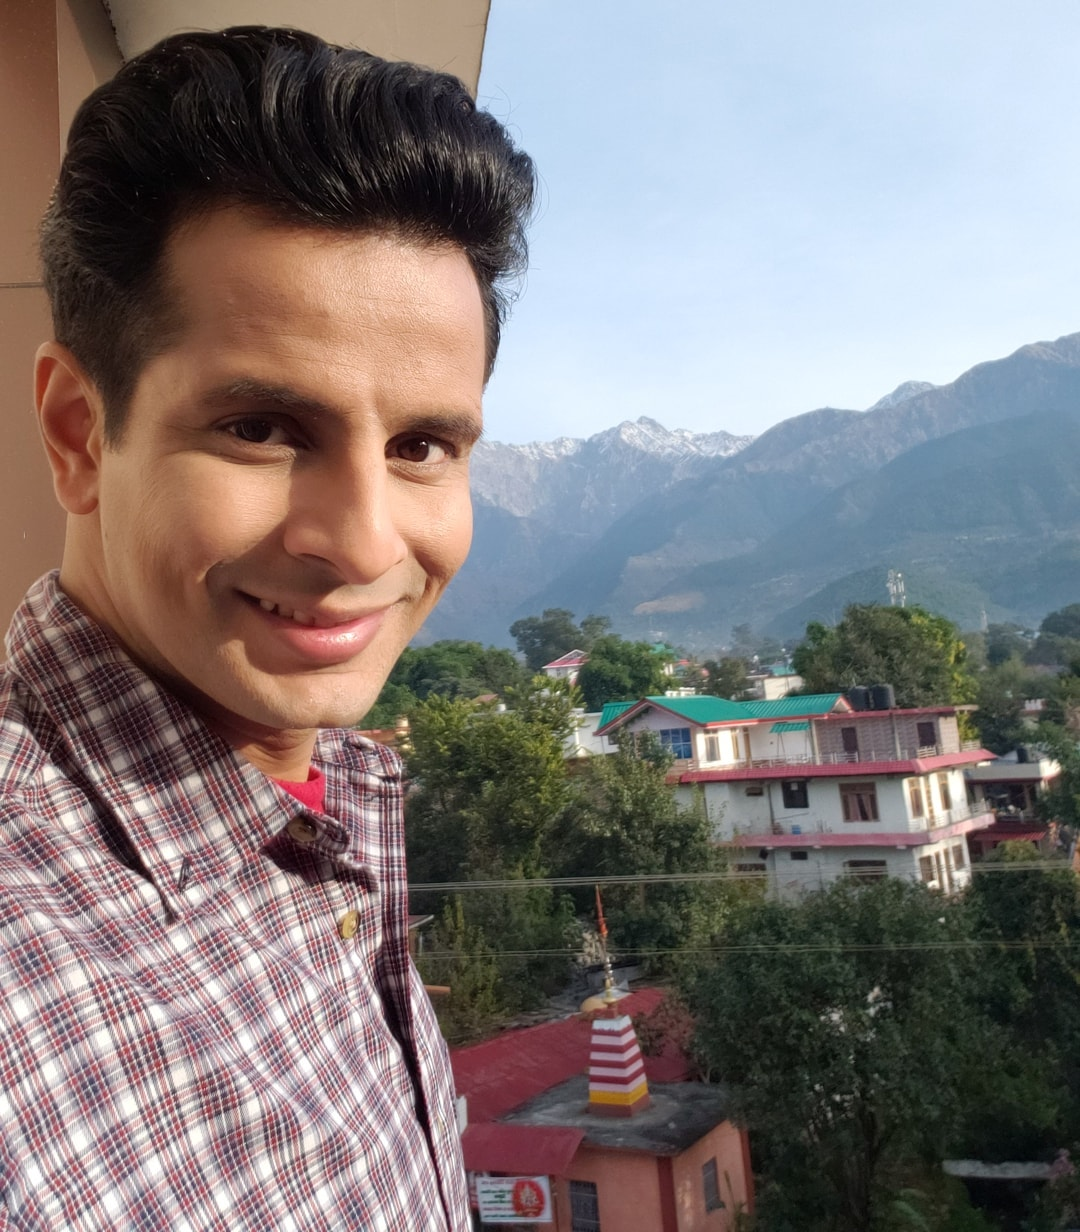 Ojas Rawal,  NoFilter, HimachalPradesh, shooting, film, OjasRawal, actor, goodmorning, theview, viewfrommywindow, mountains, snow, forest, nature, himachal, india, morningmotivation, morningvibes, mornings, morninglight, morninglight, morningview, hindi, bollywood, actorlife, mountain, beautiful, beautifulview, whataview, indiantraveller, happyme